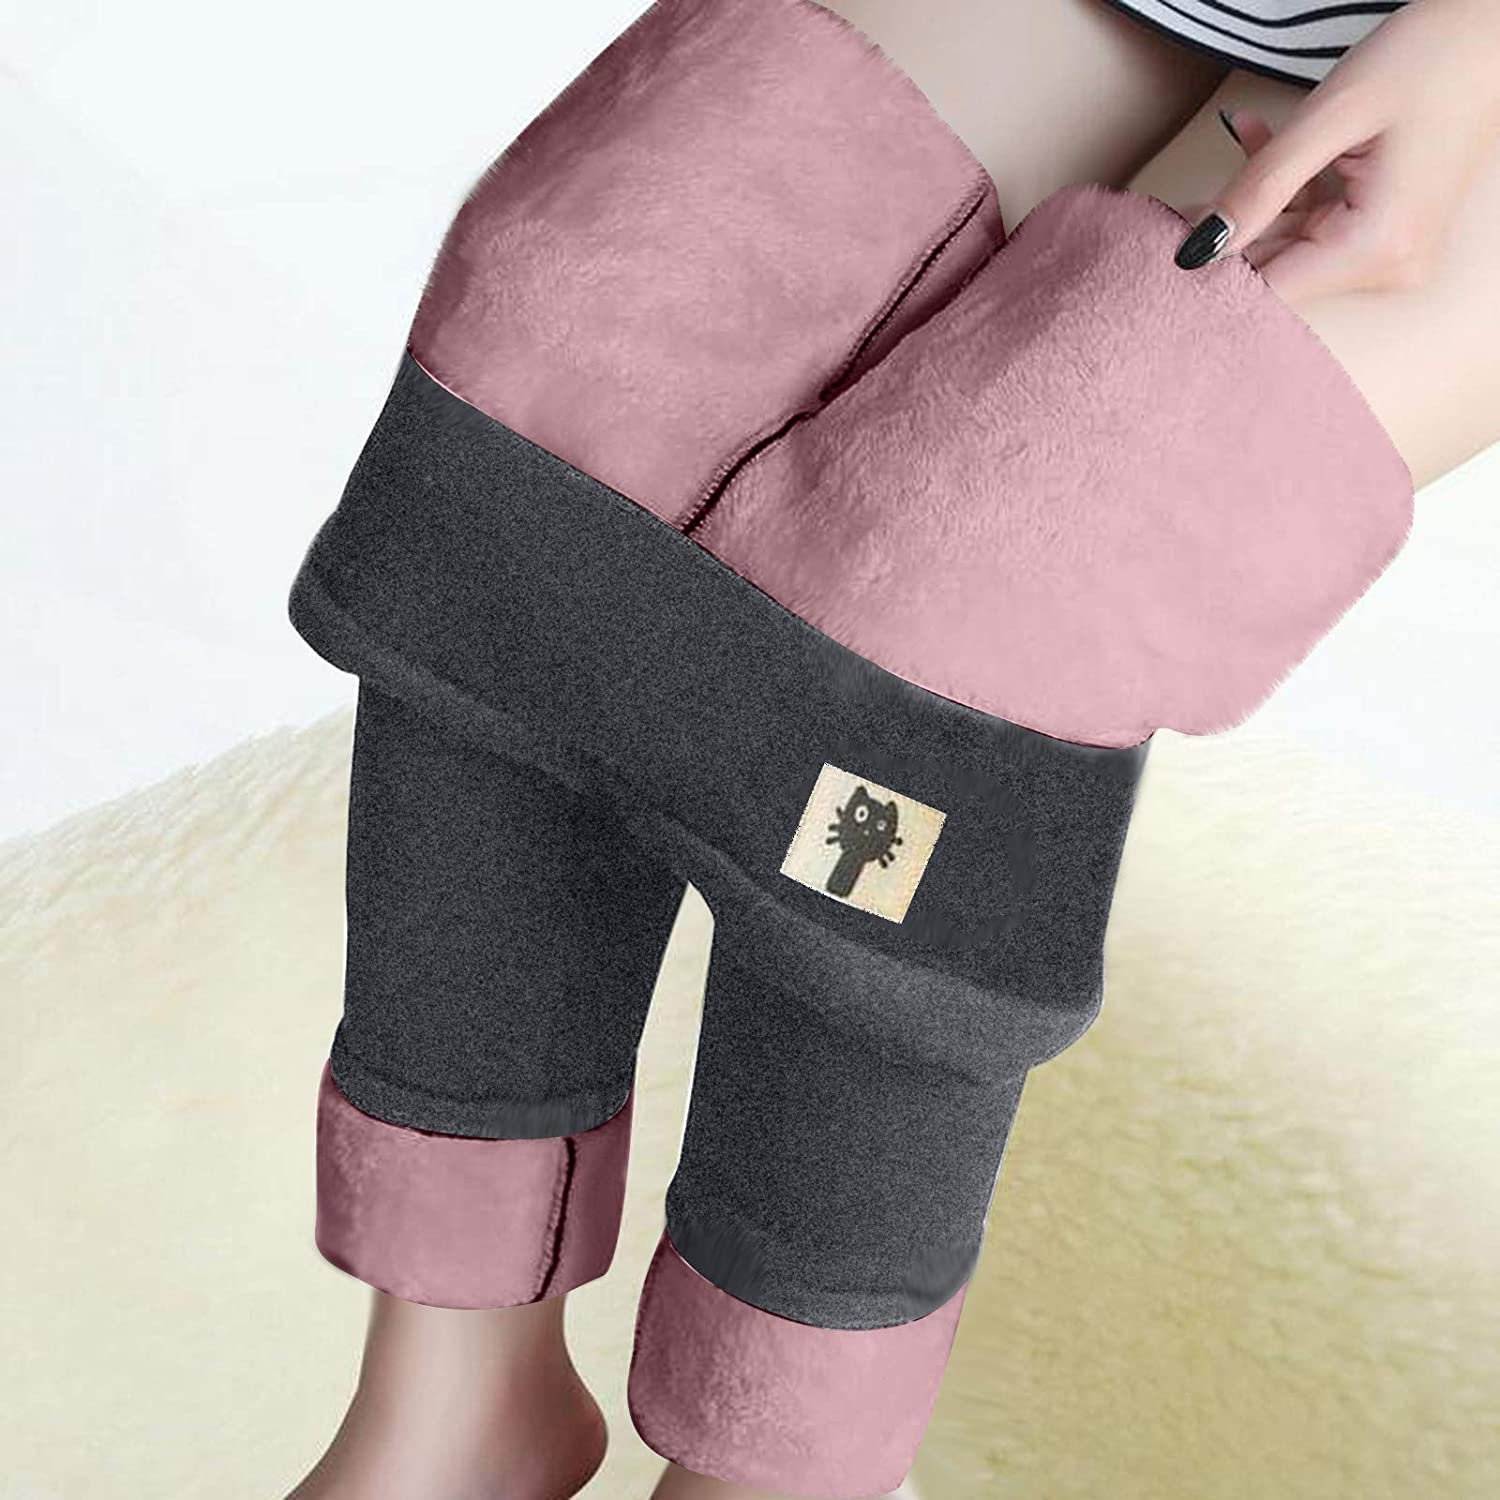 Thatso Women Winter Warm Fleece Lined Leggings High Waisted Thick Thermal Cashmere Tights Cute Cat Print Comfy Skinny Pants